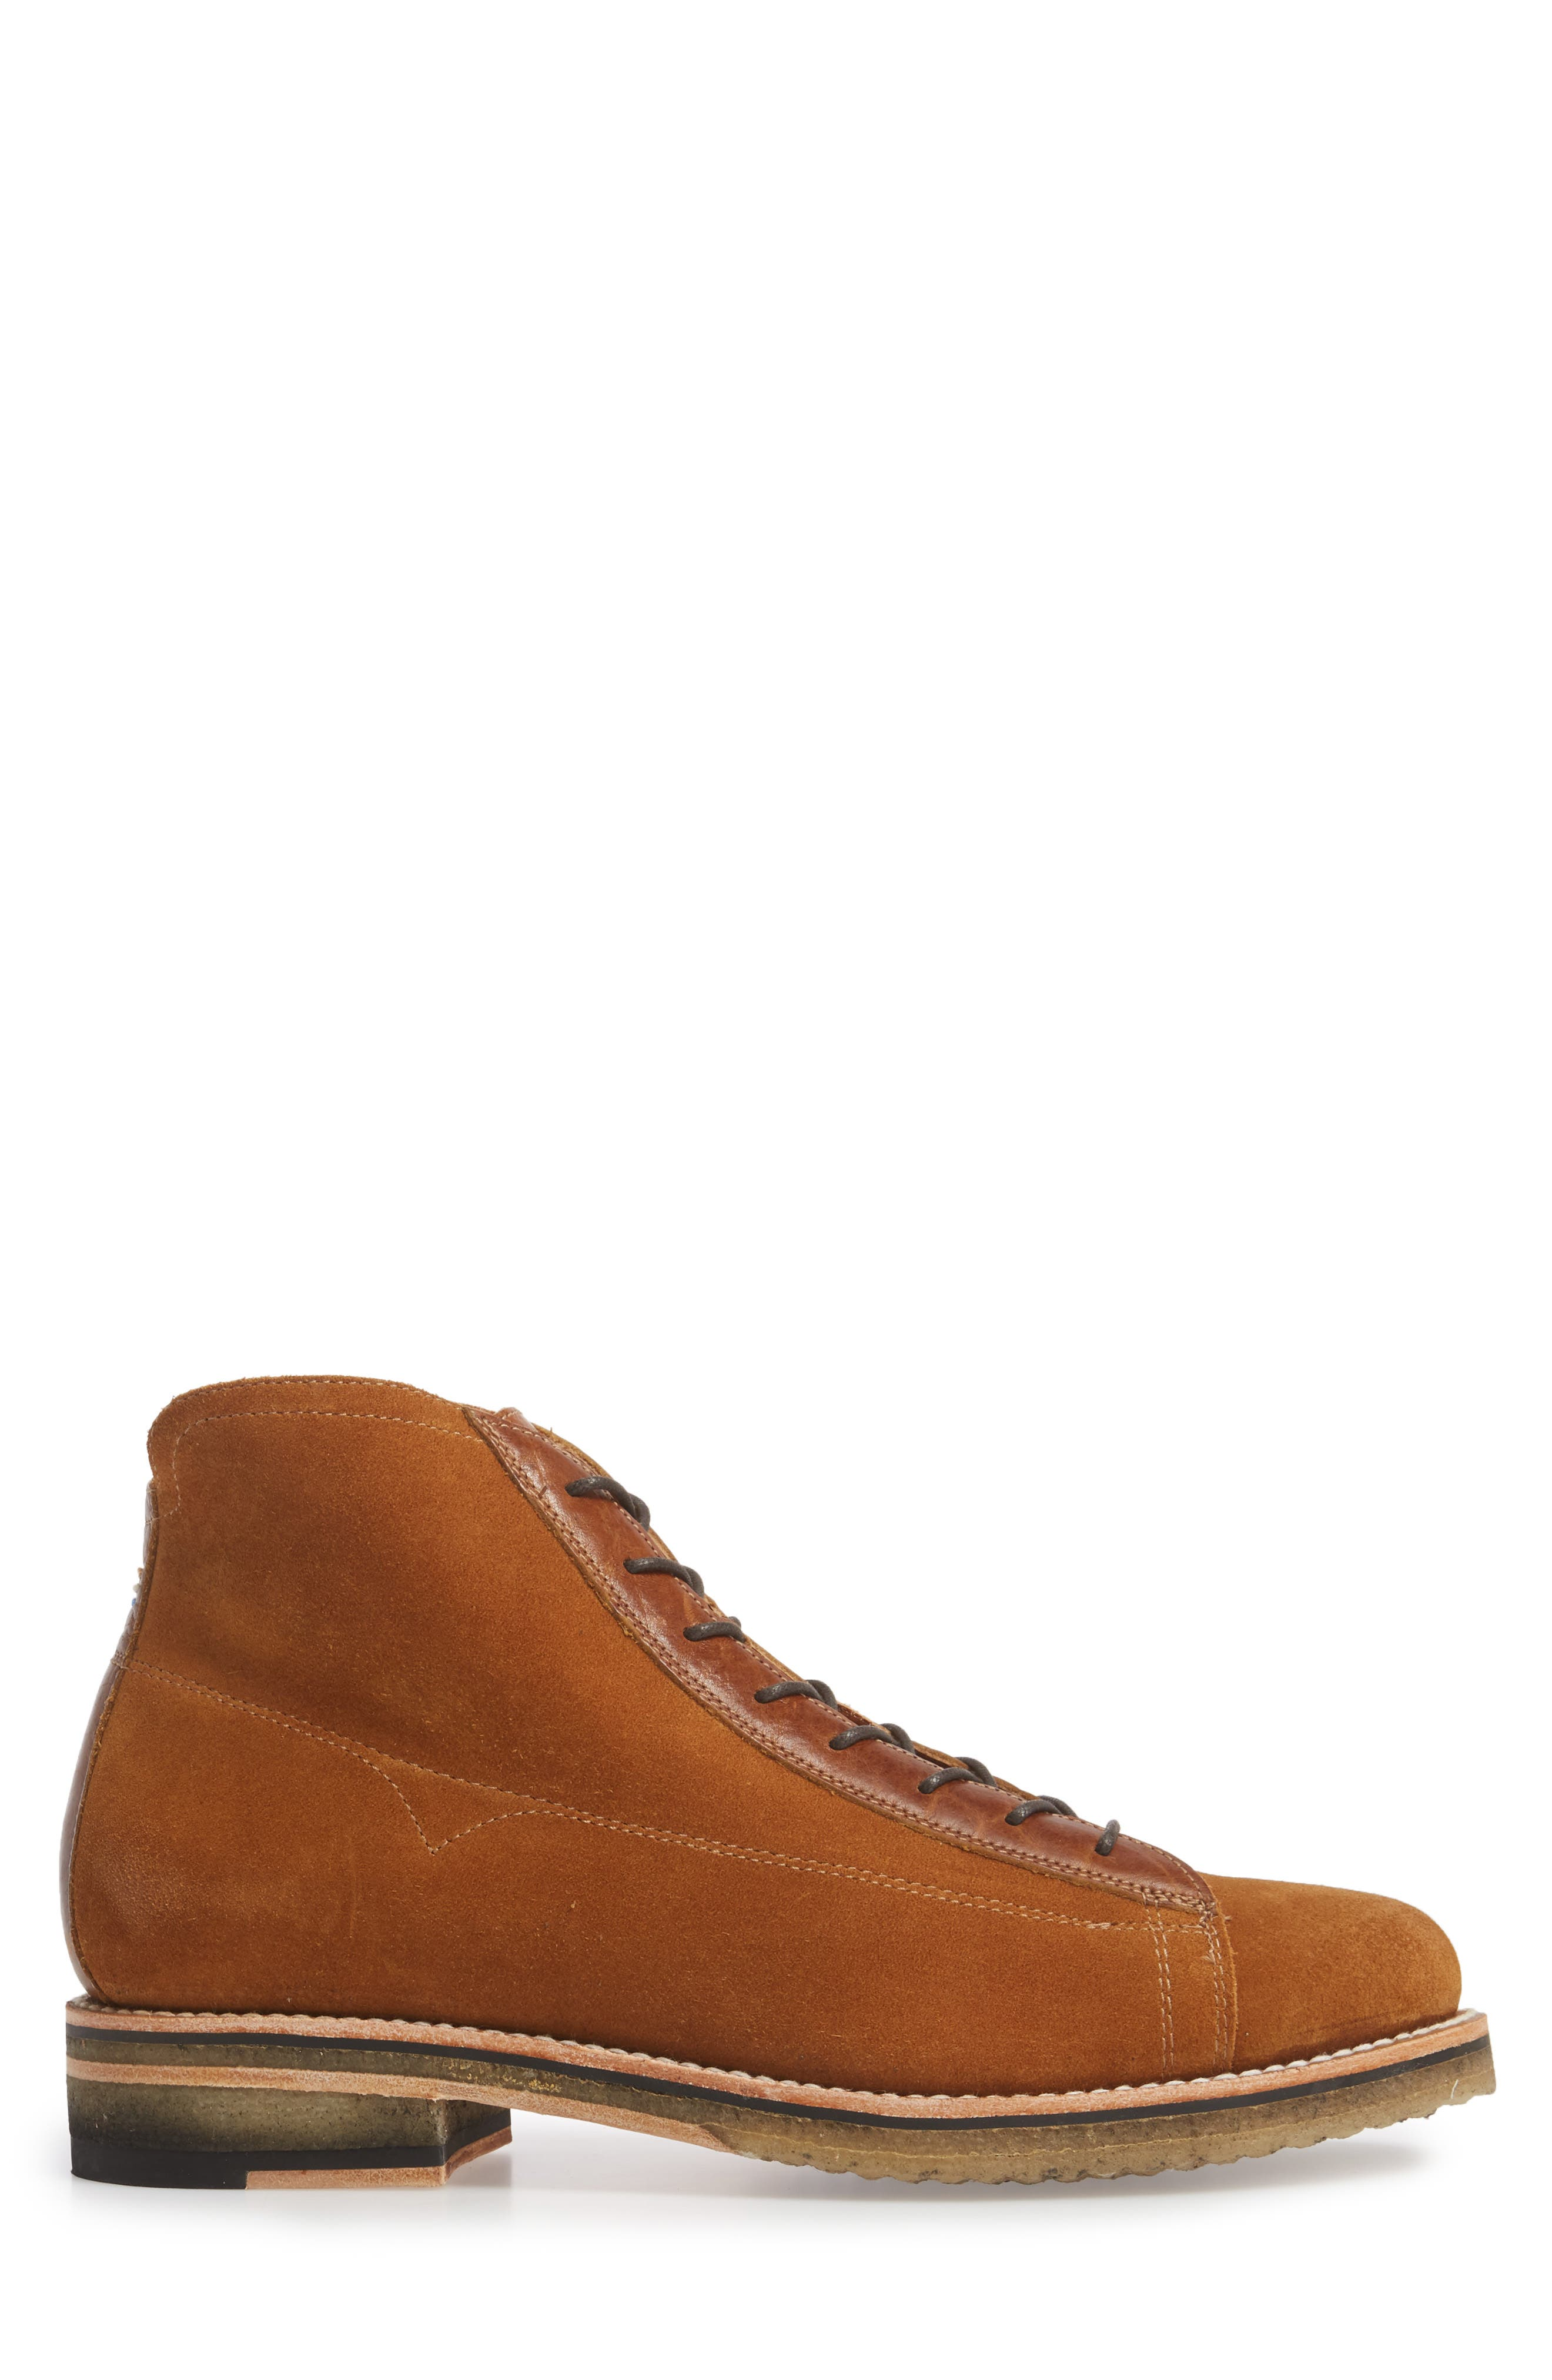 Two24 by Ariat Webster Boot,                             Alternate thumbnail 5, color,